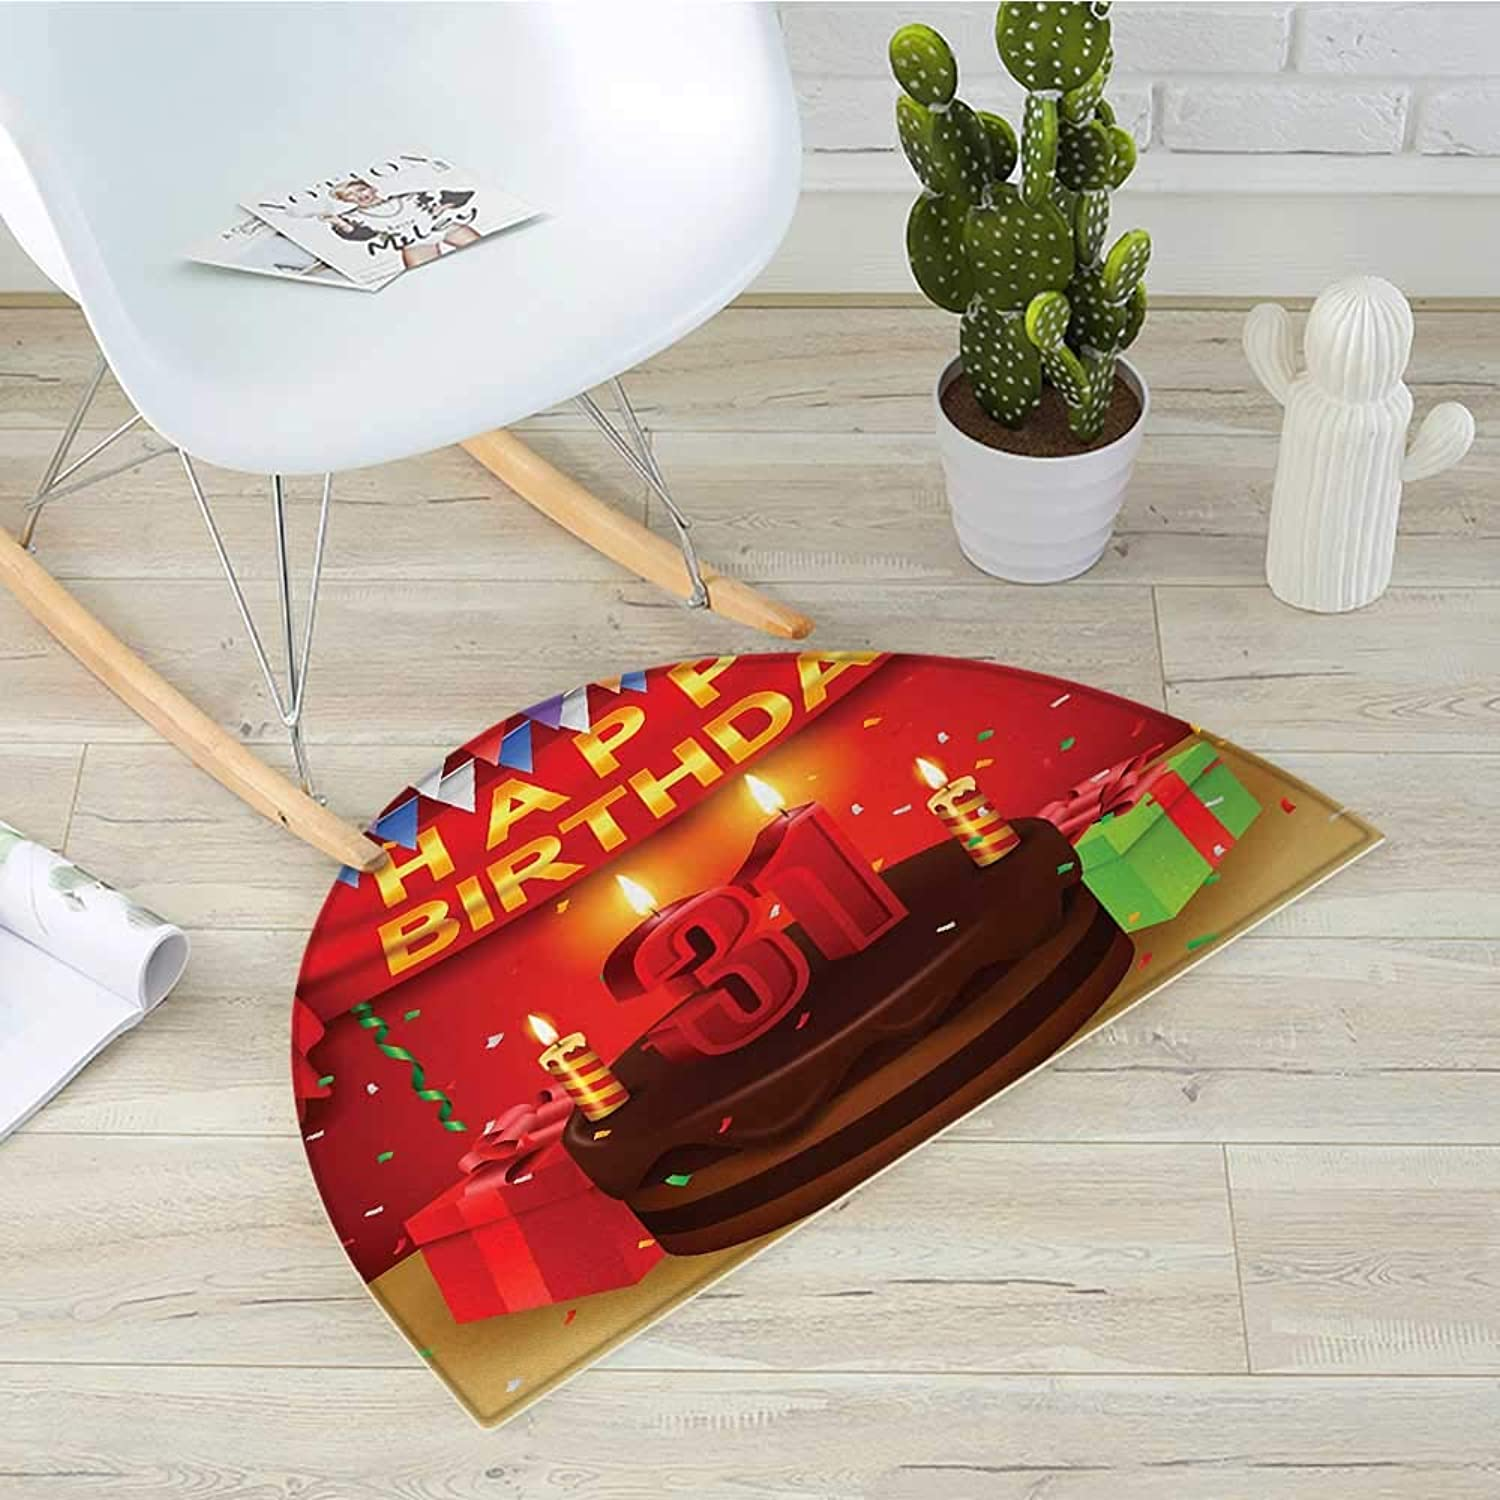 31st Birthday Semicircular Cushioncolorful Vibrant Party Set Up Presents Candles Flags Festive Confetti Rain Entry Door Mat H 35.4  xD 53.1  Multicolor